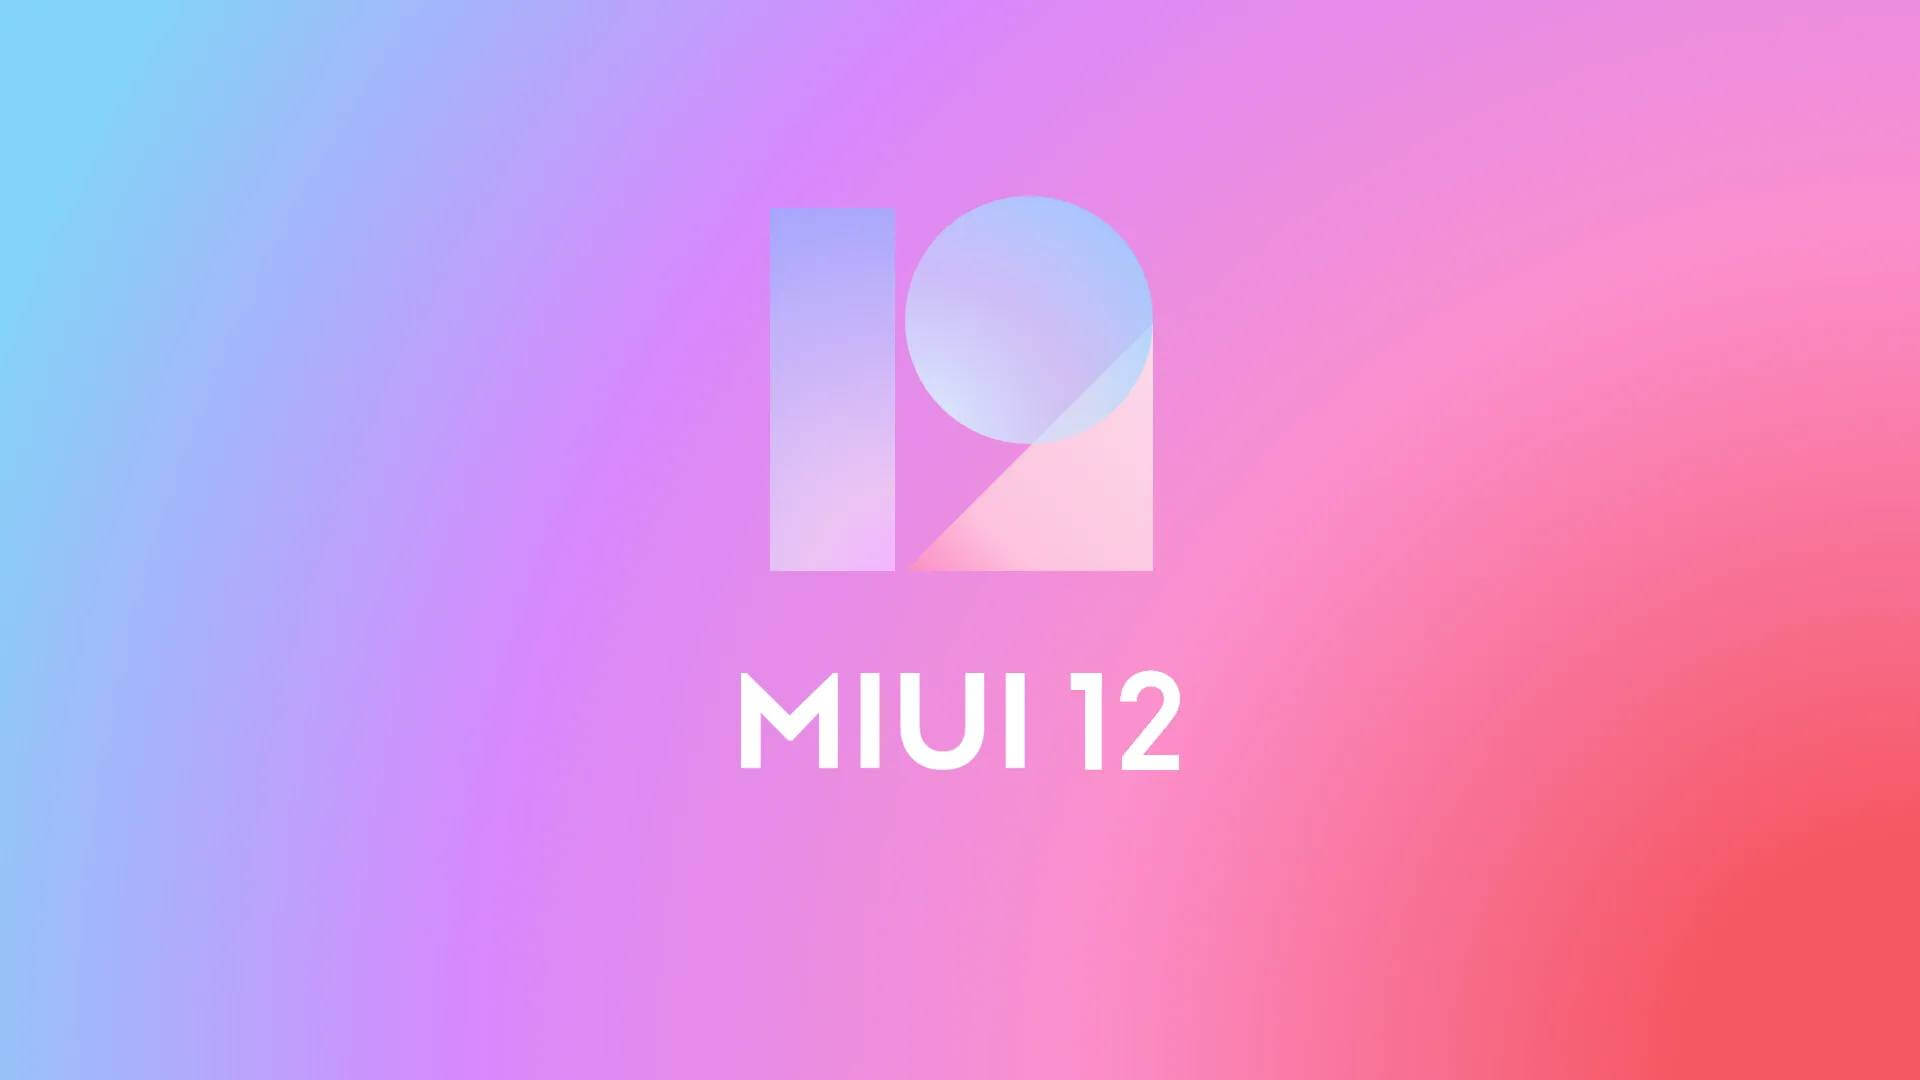 MIUI 12 based on Android 10.